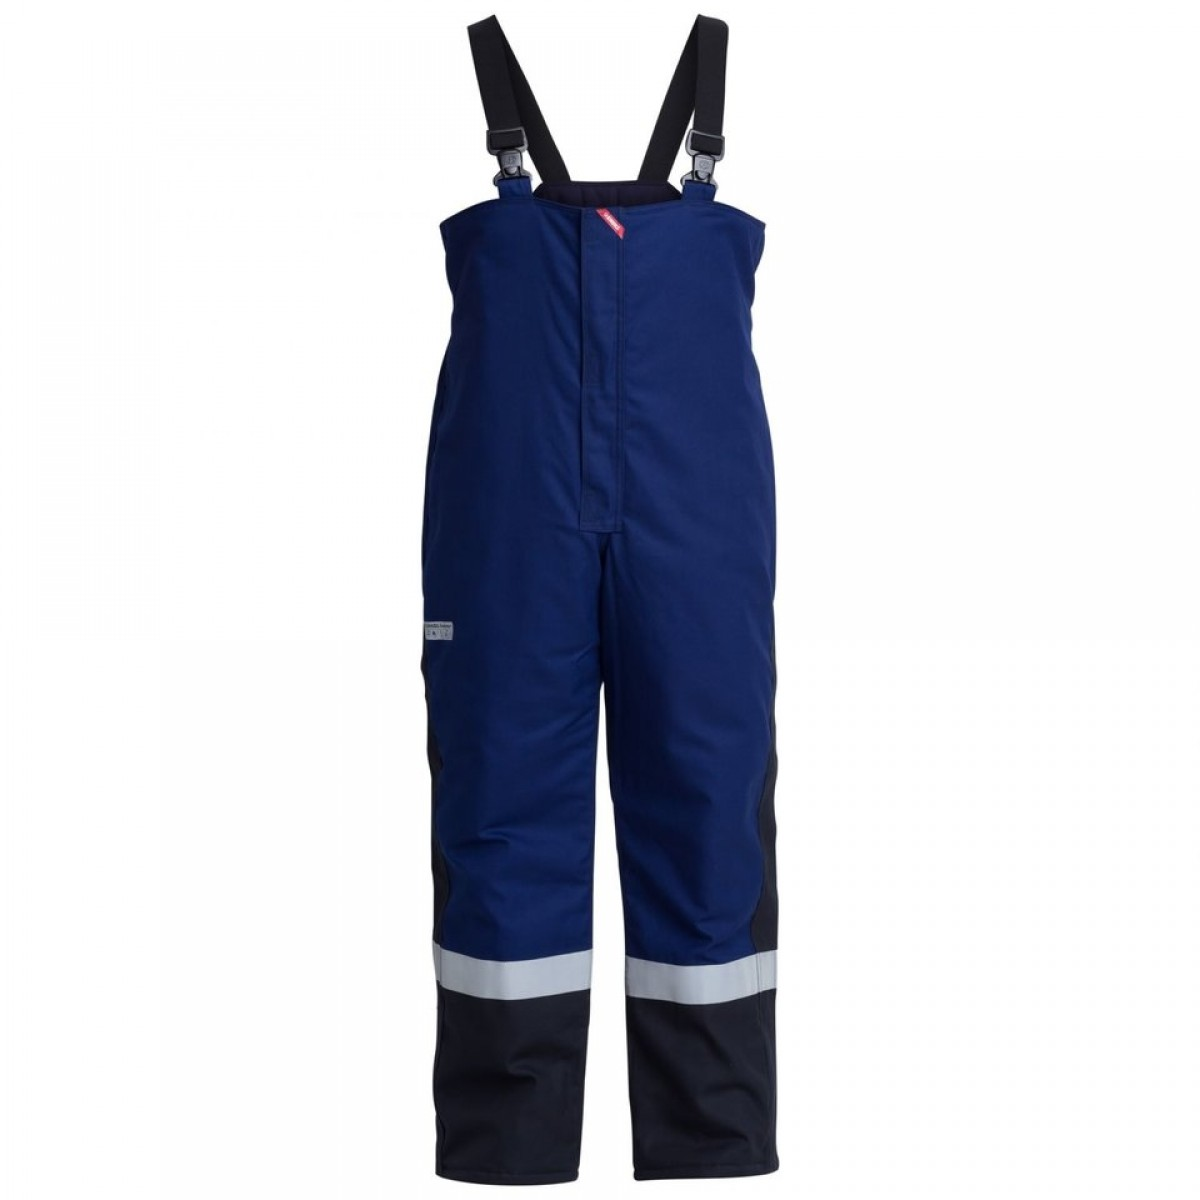 F. Engel Safety+ Vinteroverall-31